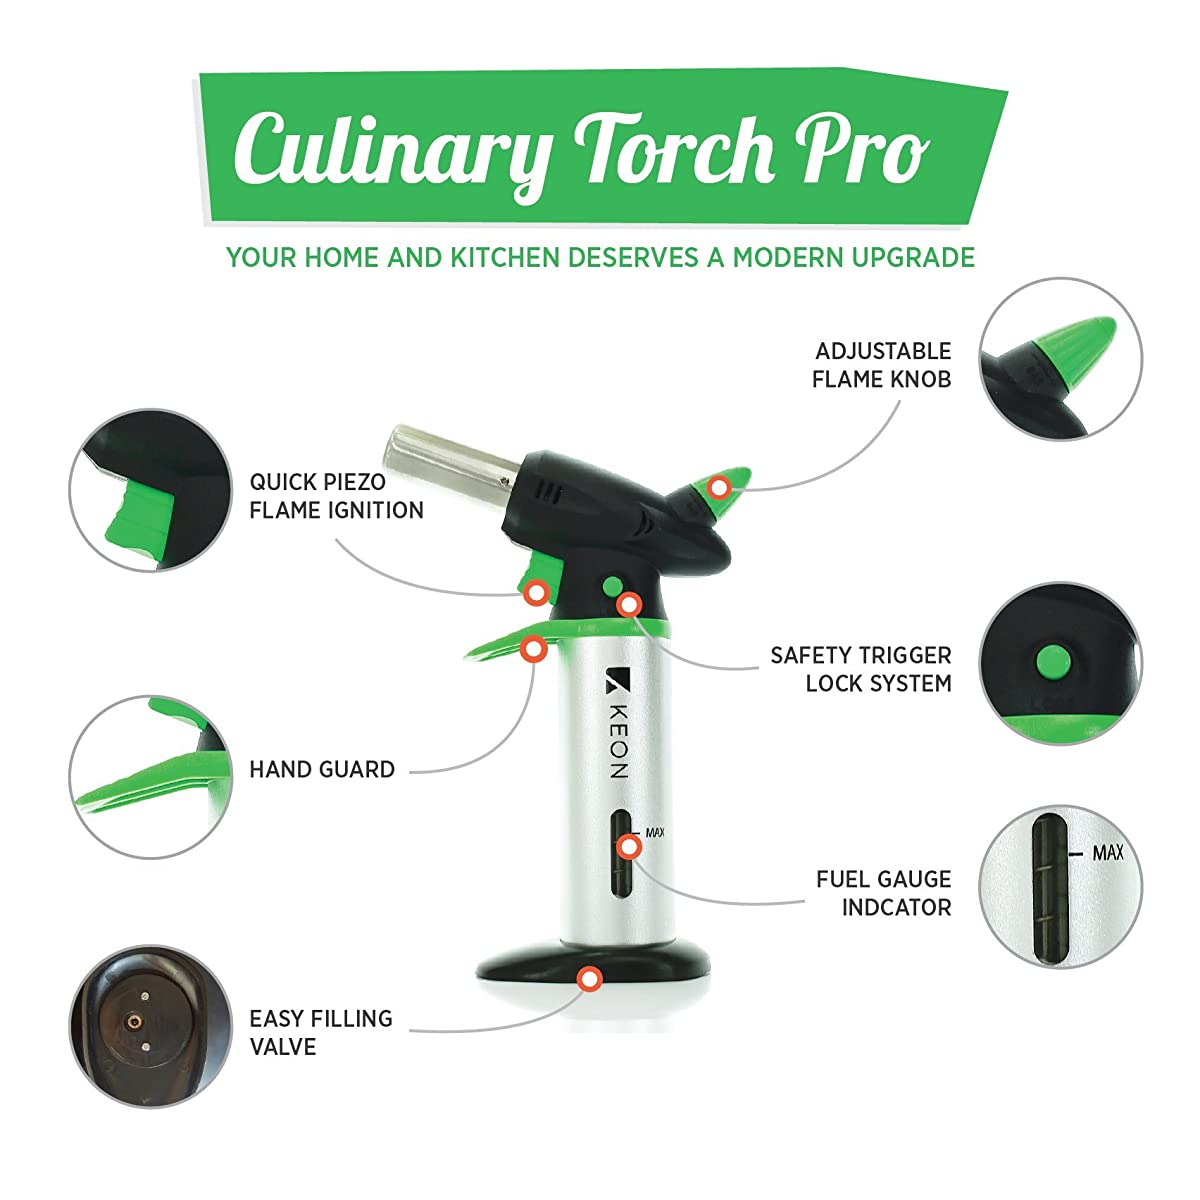 Butane Torch For Kitchen - Best Food Blow Torch For Creme Brulee - Chef Grade Culinary Tool For Cooking - Professional Safety Lock With Fuel Gauge